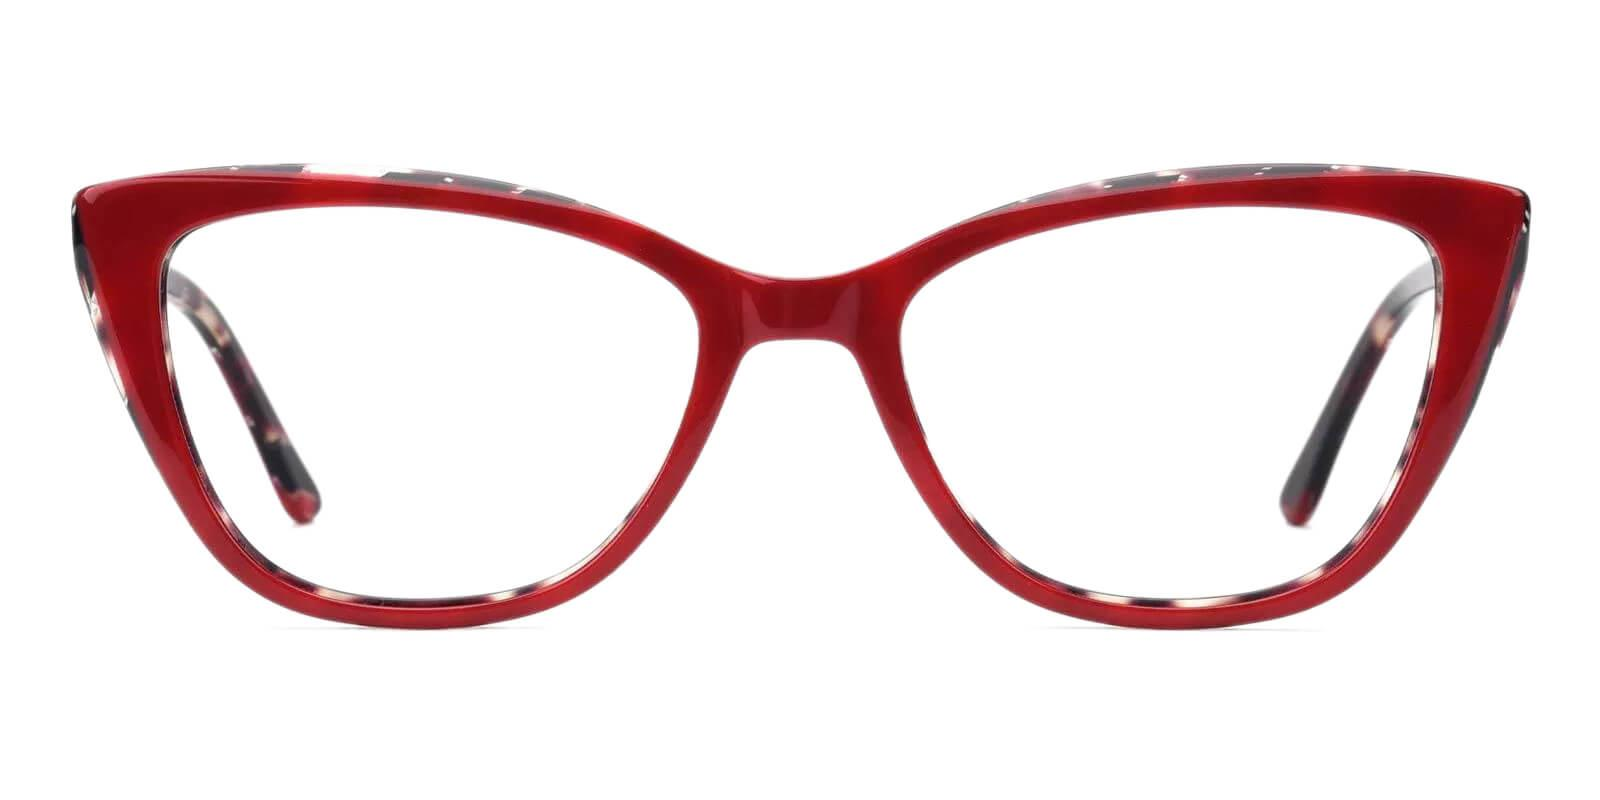 Teddy Red Acetate Eyeglasses , Fashion , SpringHinges , UniversalBridgeFit Frames from ABBE Glasses